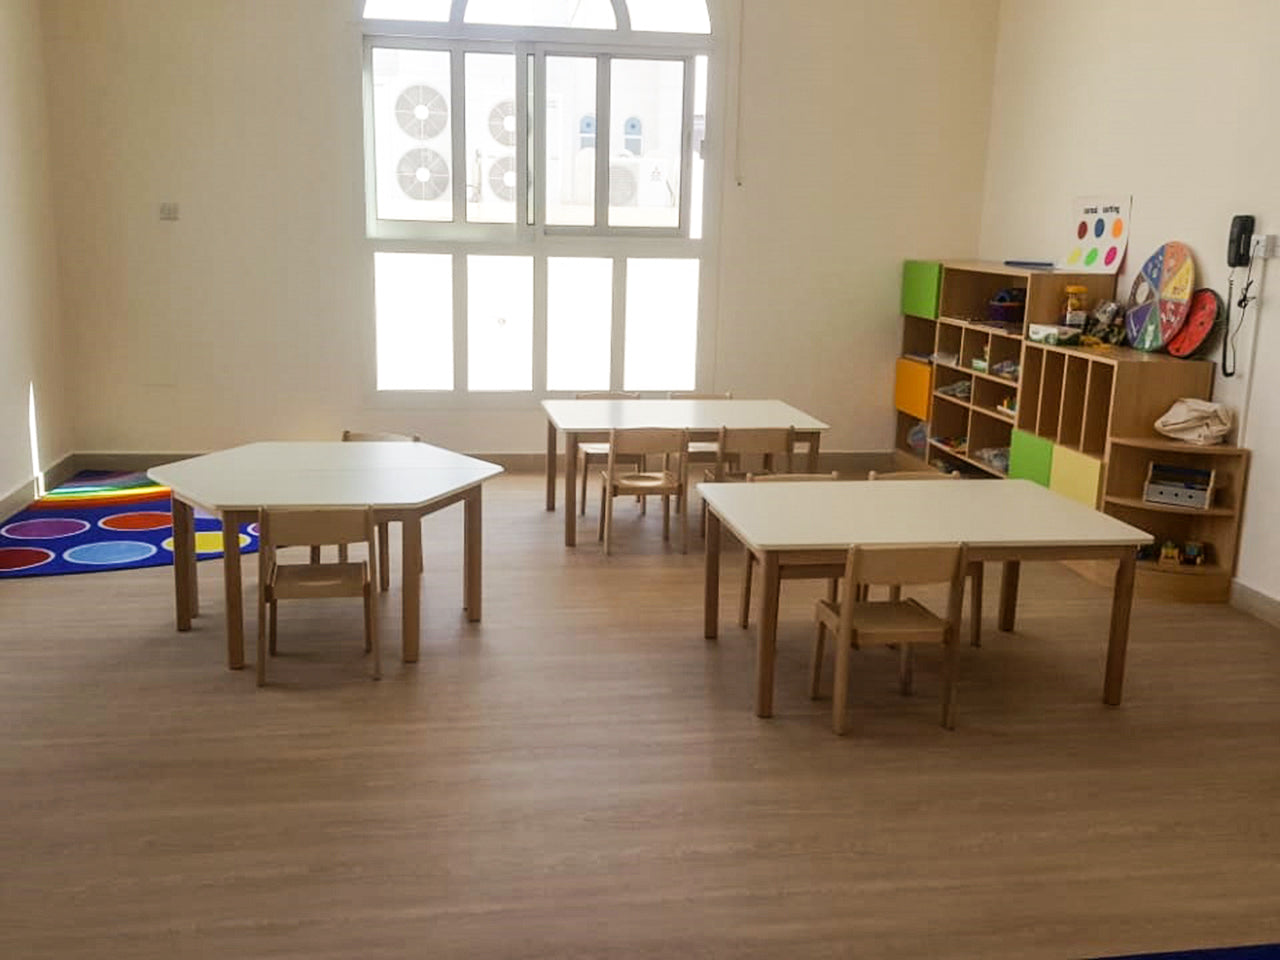 IQ Nursery - UAE Project Image.